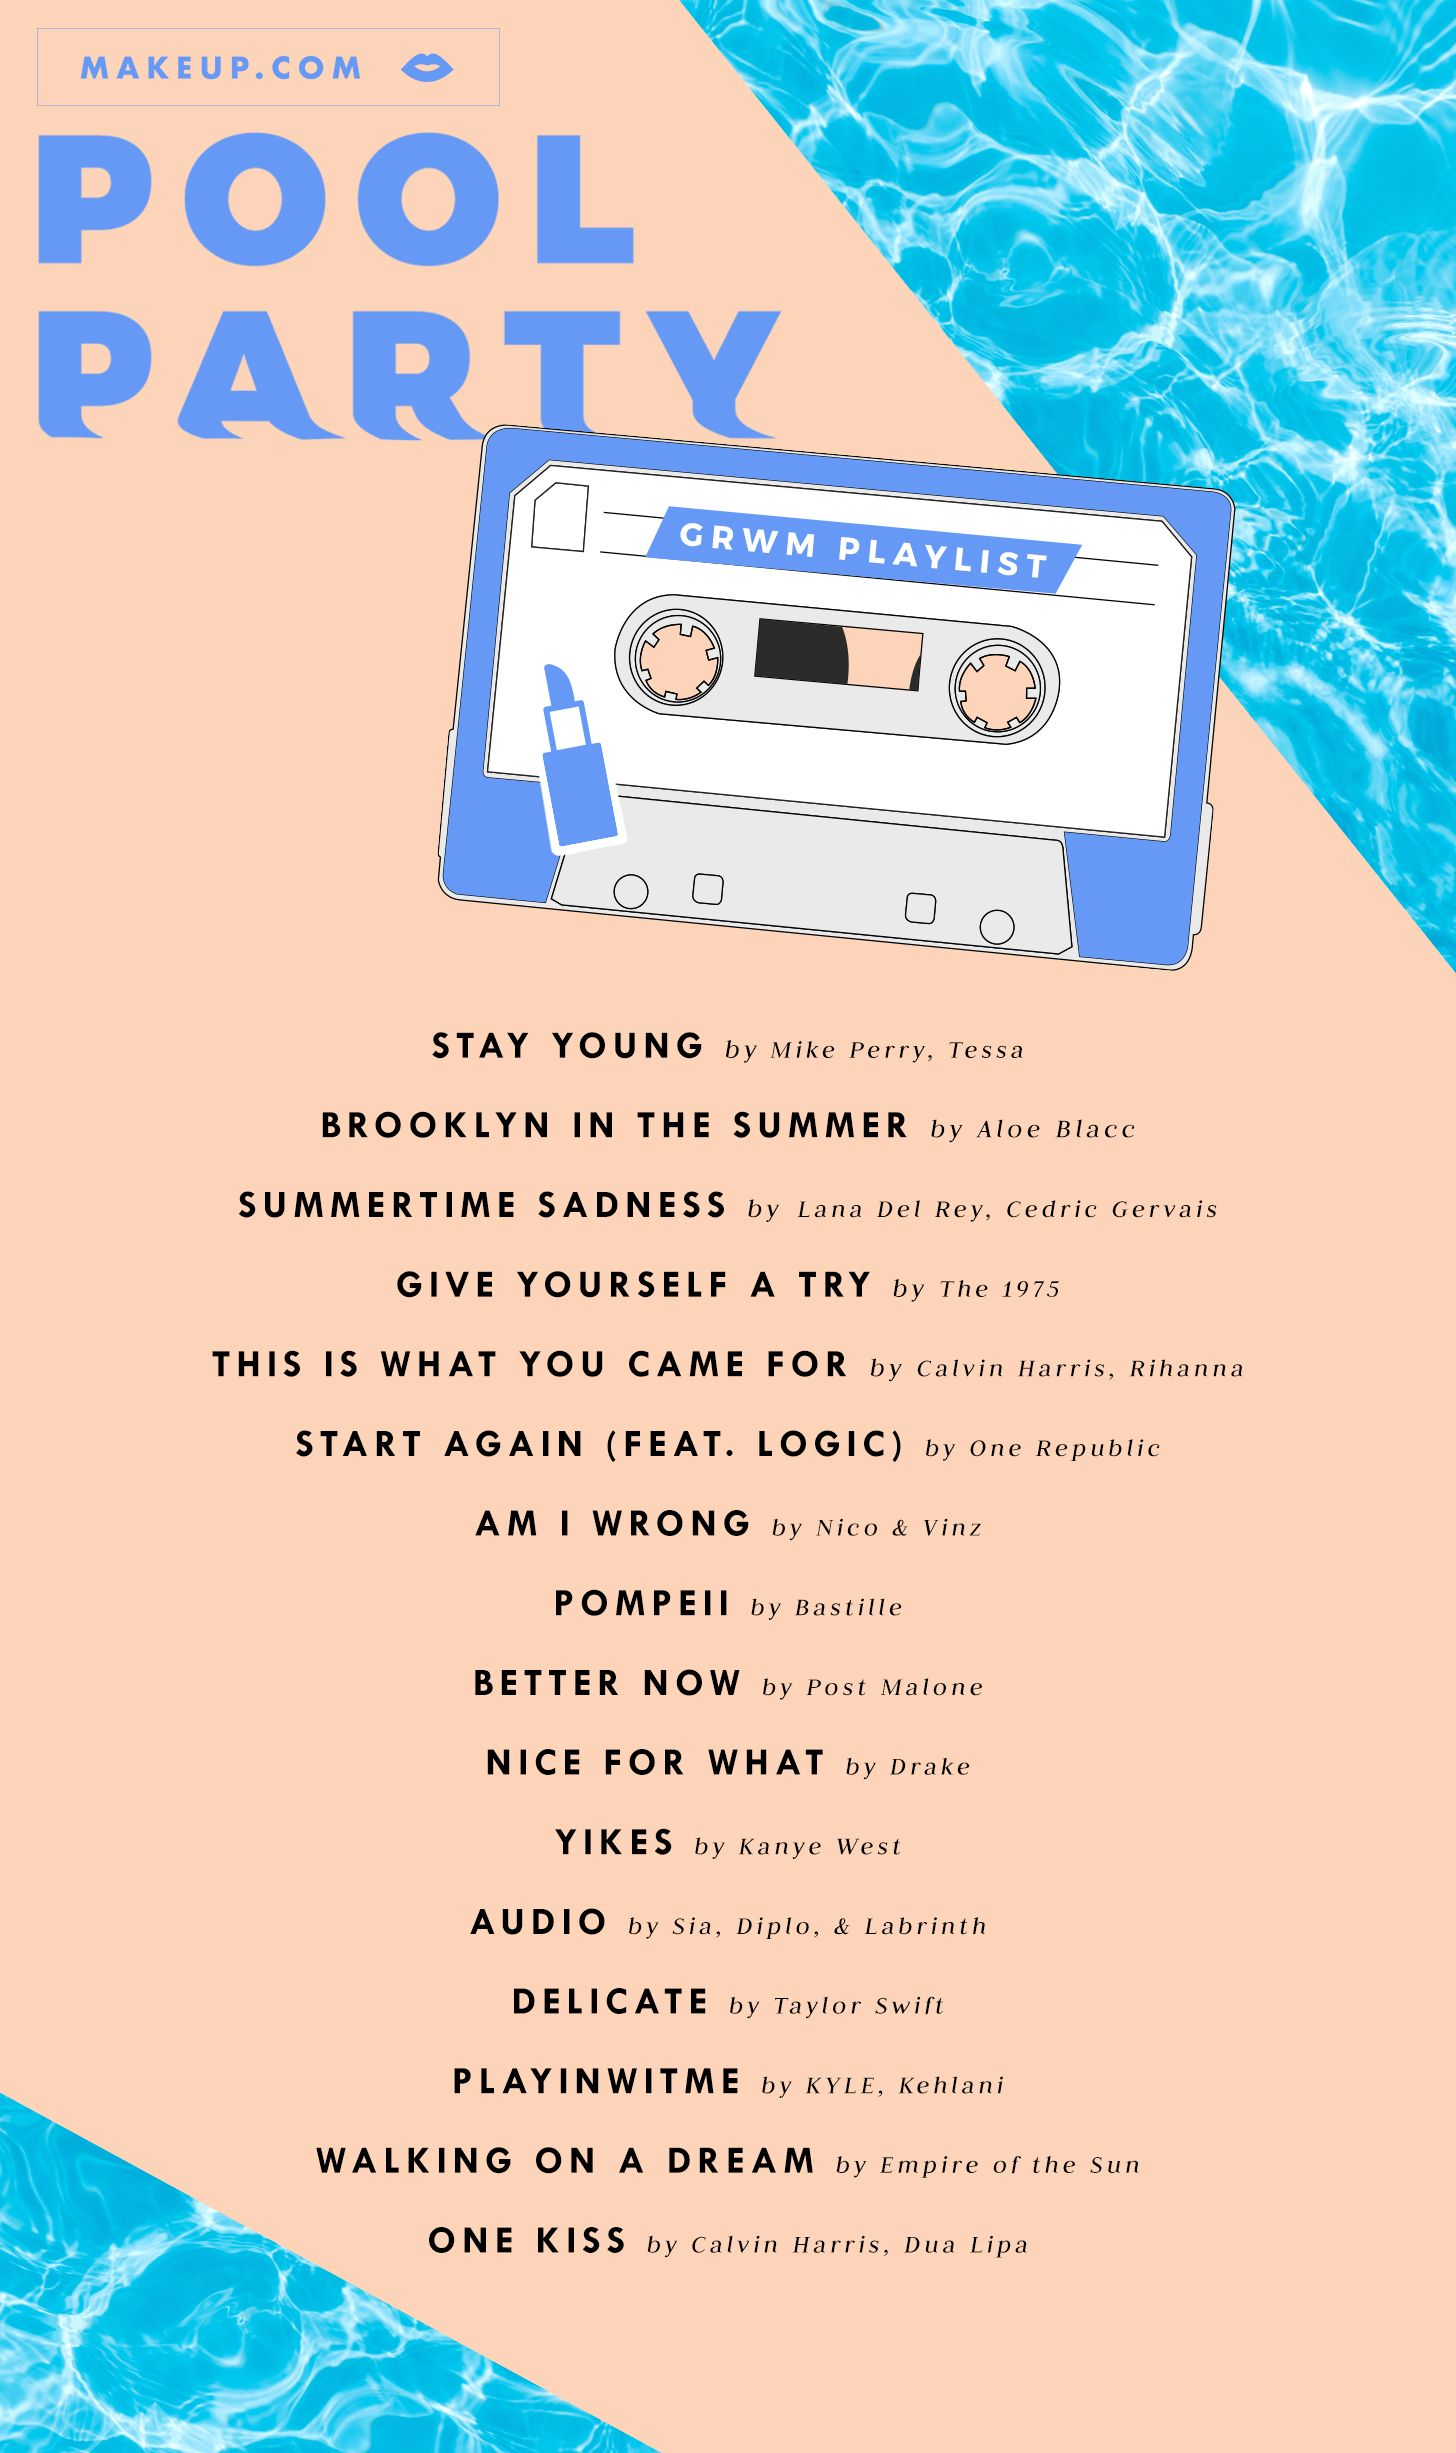 The Best Waterproof Makeup Products Makeup Com By L Oreal Summer Songs Playlist Party Playlist Party Music Playlist